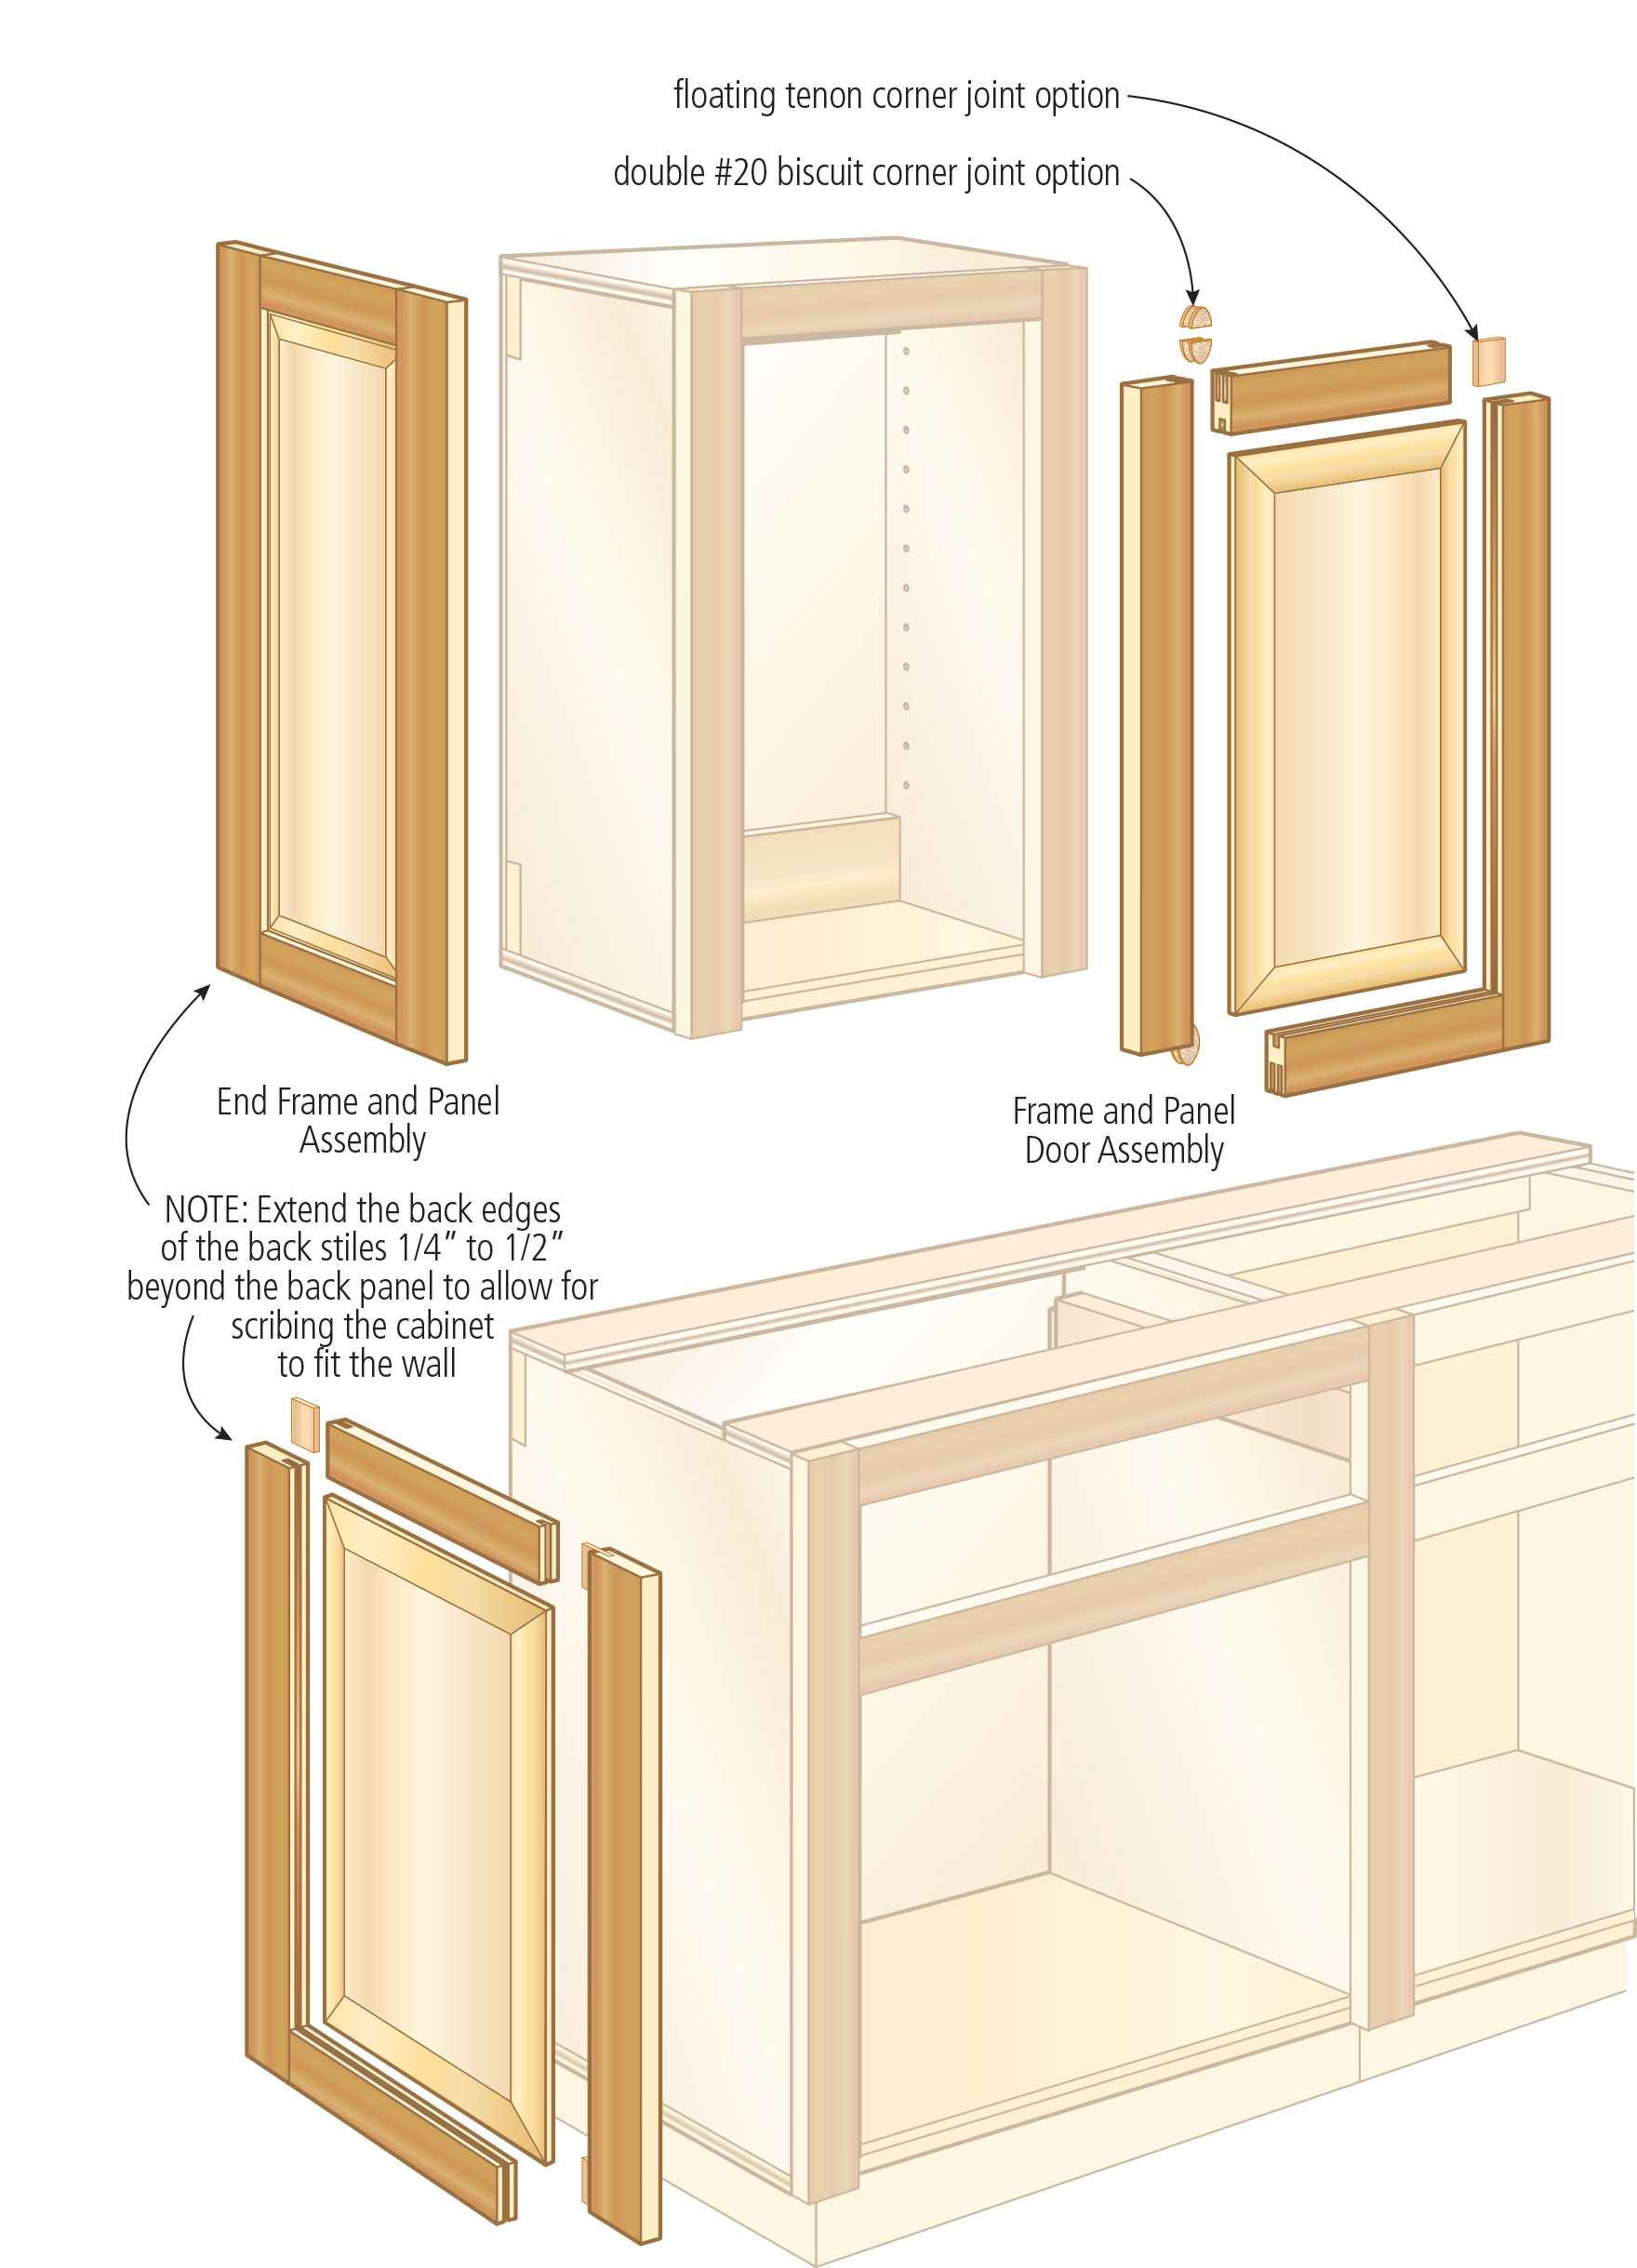 Building Wall Cabinets : building, cabinets, Excerpt:, Building, Traditional, Frame, Cabinets, Popular, Woodworking, Magazine